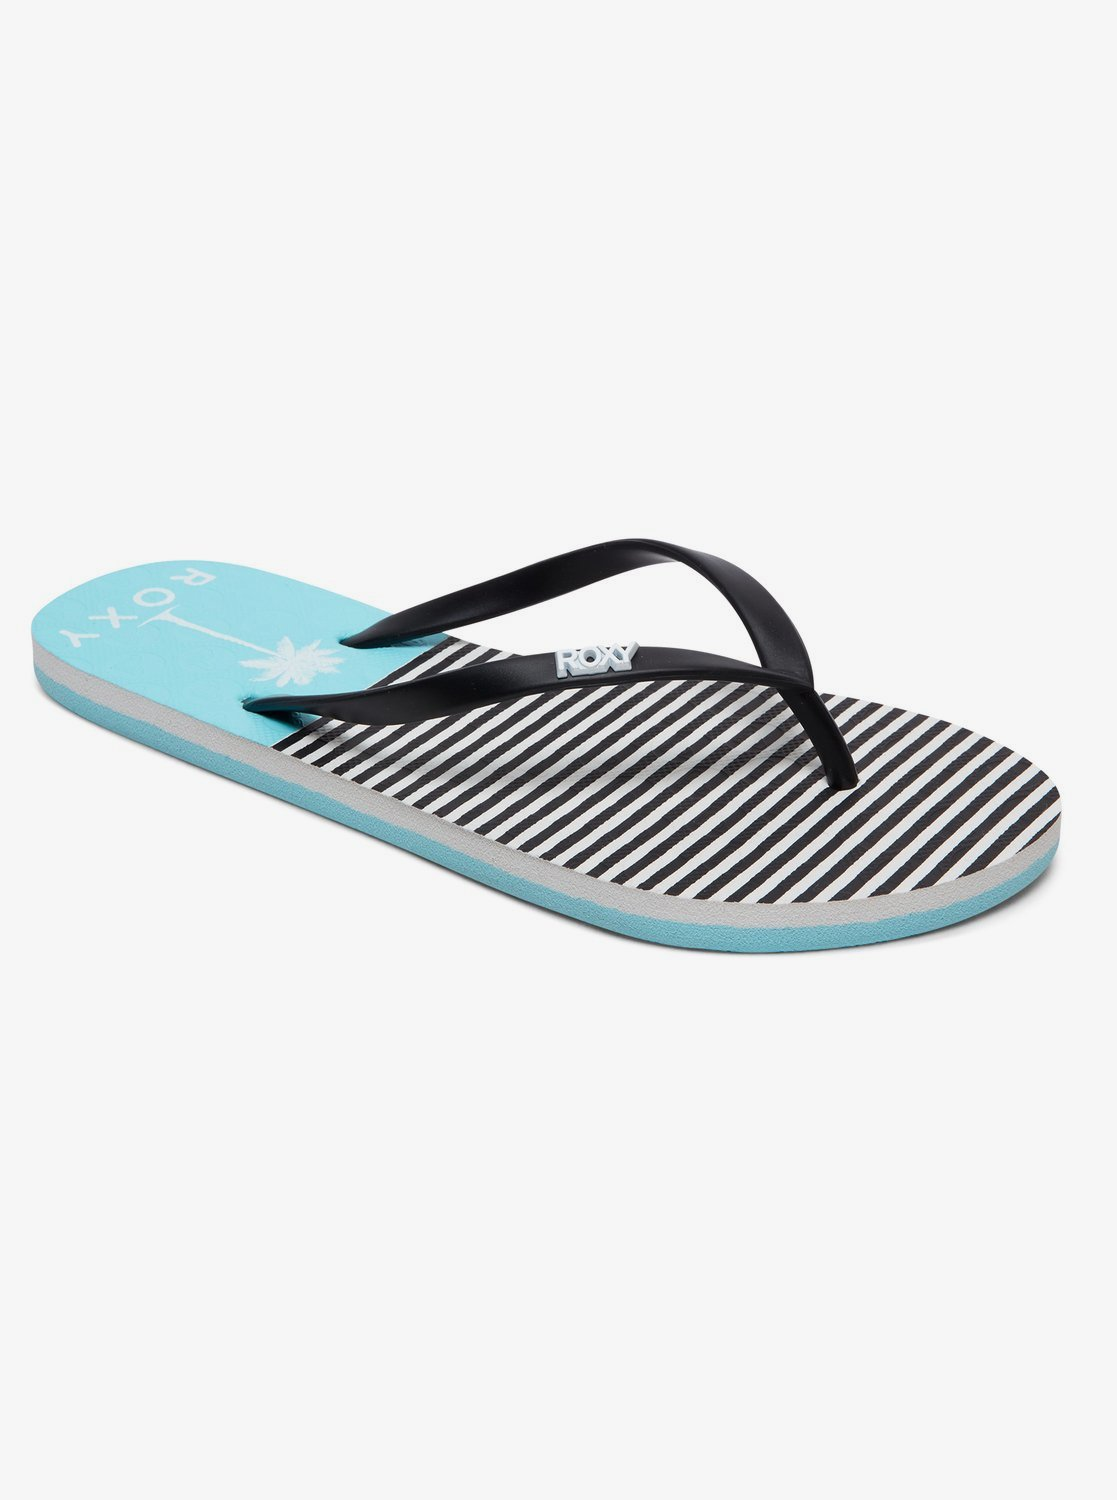 real quality Good Prices the best Viva Stamp Flip-Flops